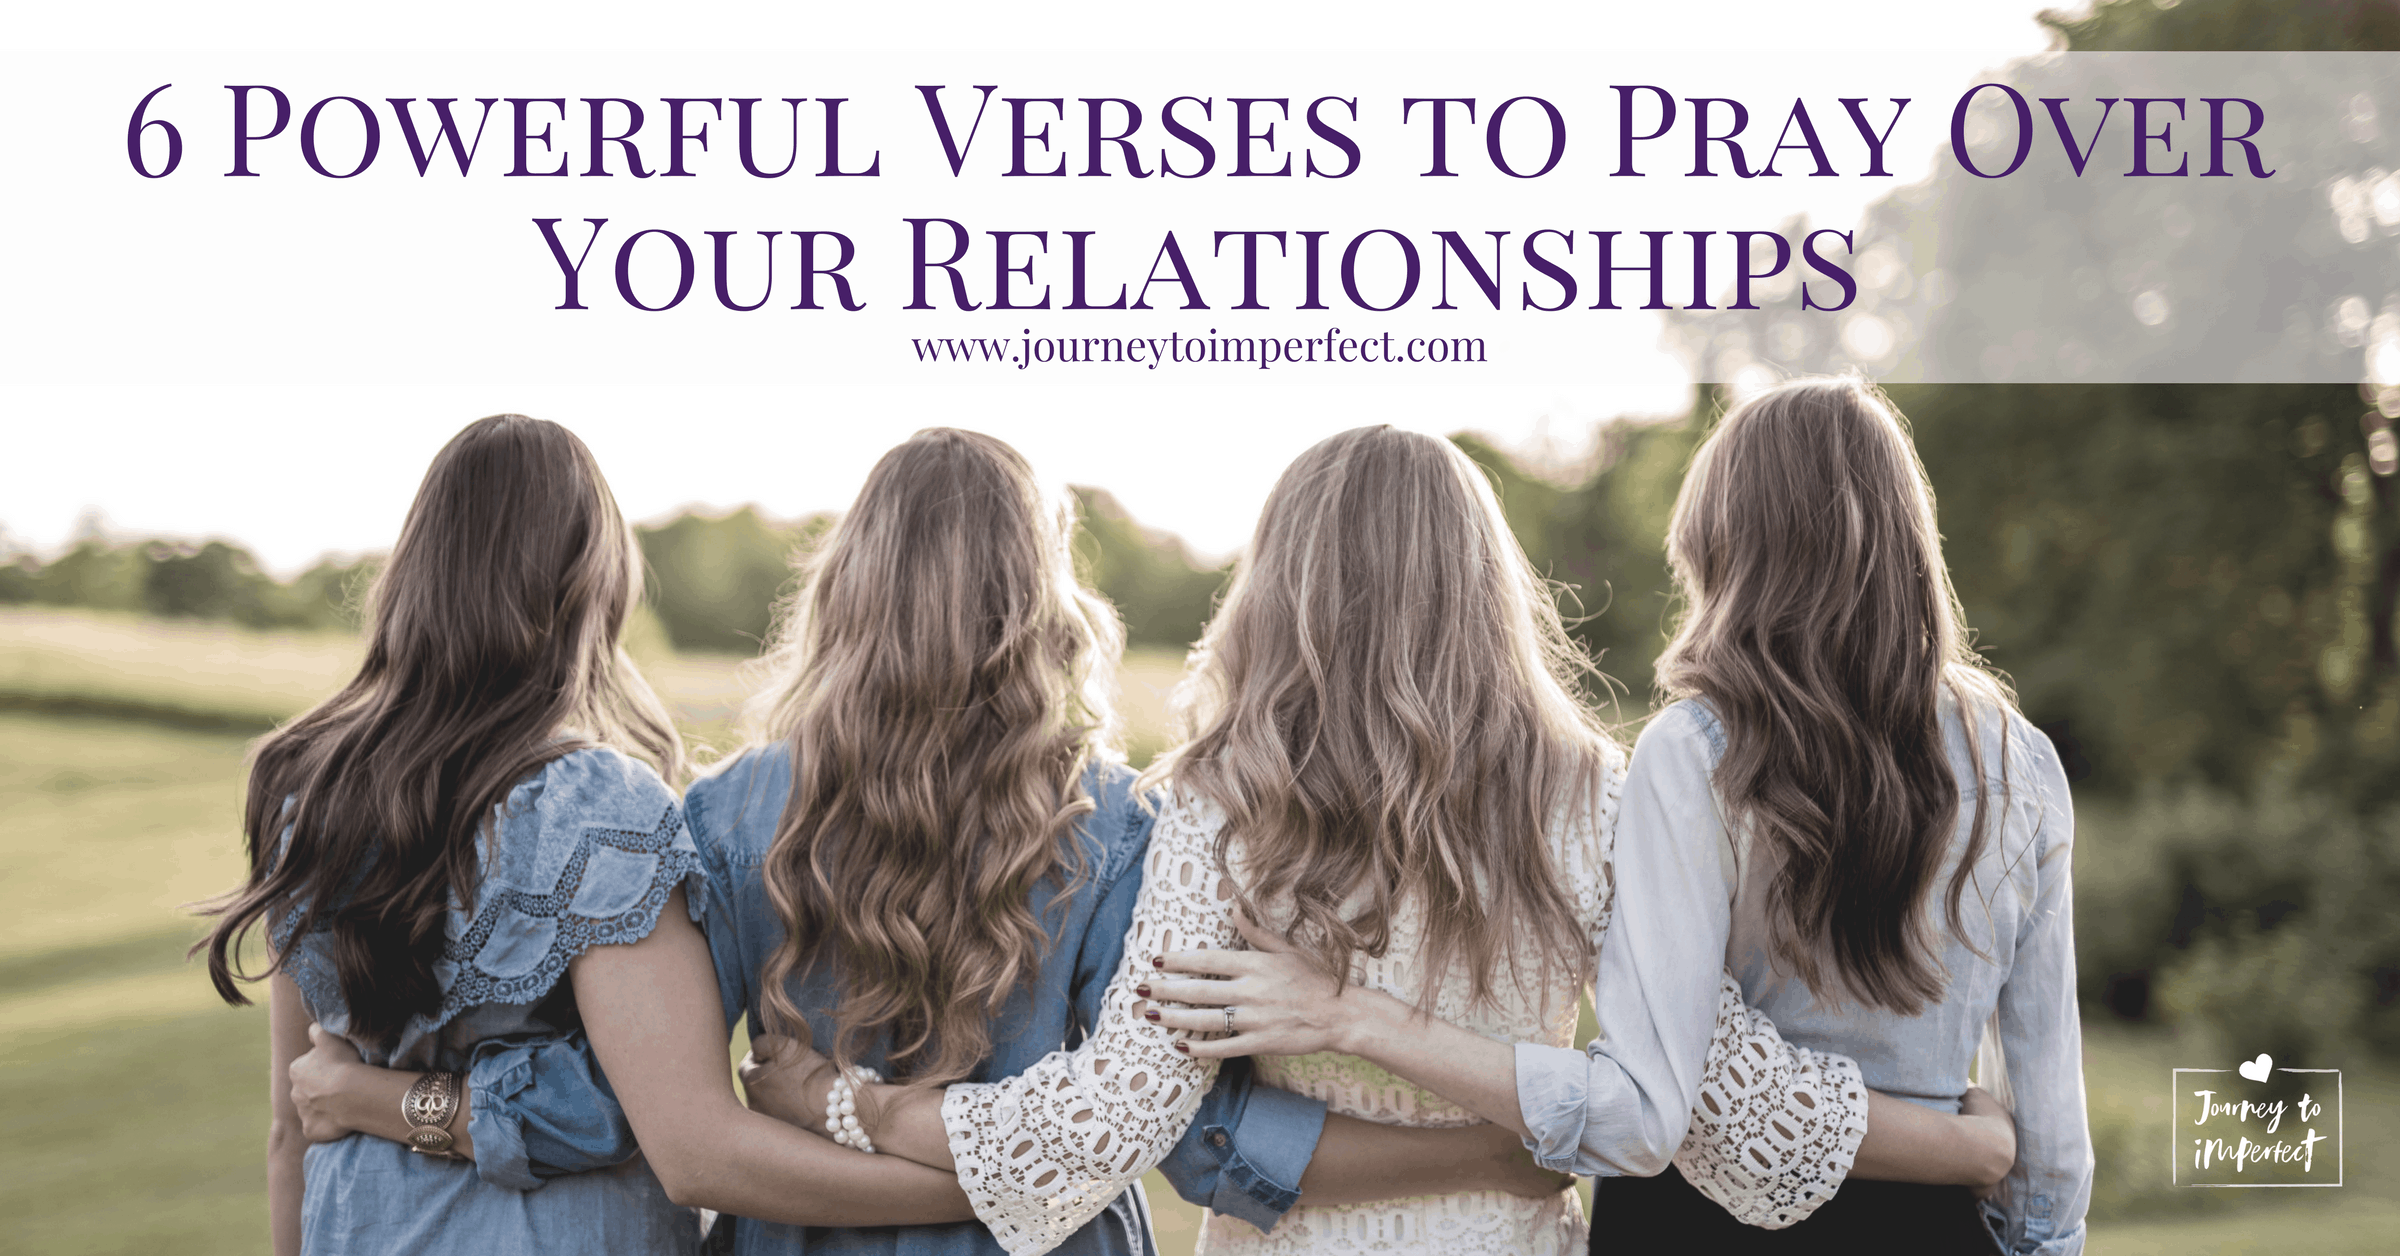 Prayer to heal relationship with girlfriend